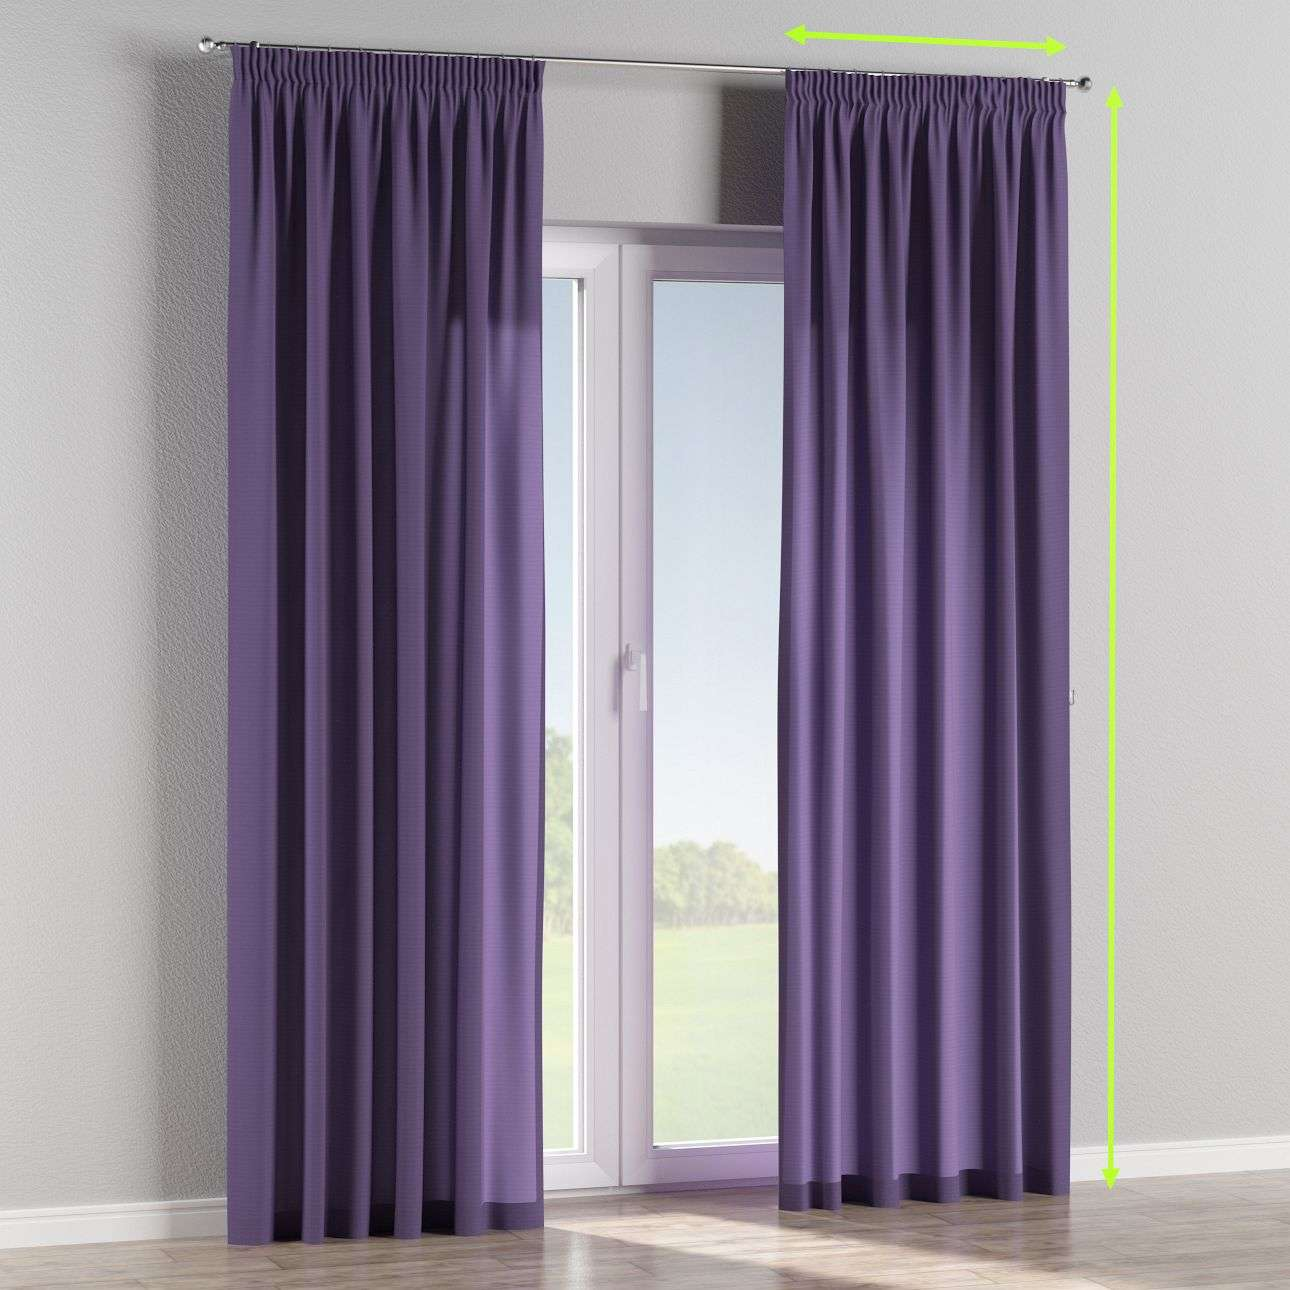 Pencil pleat curtains in collection Jupiter, fabric: 127-75